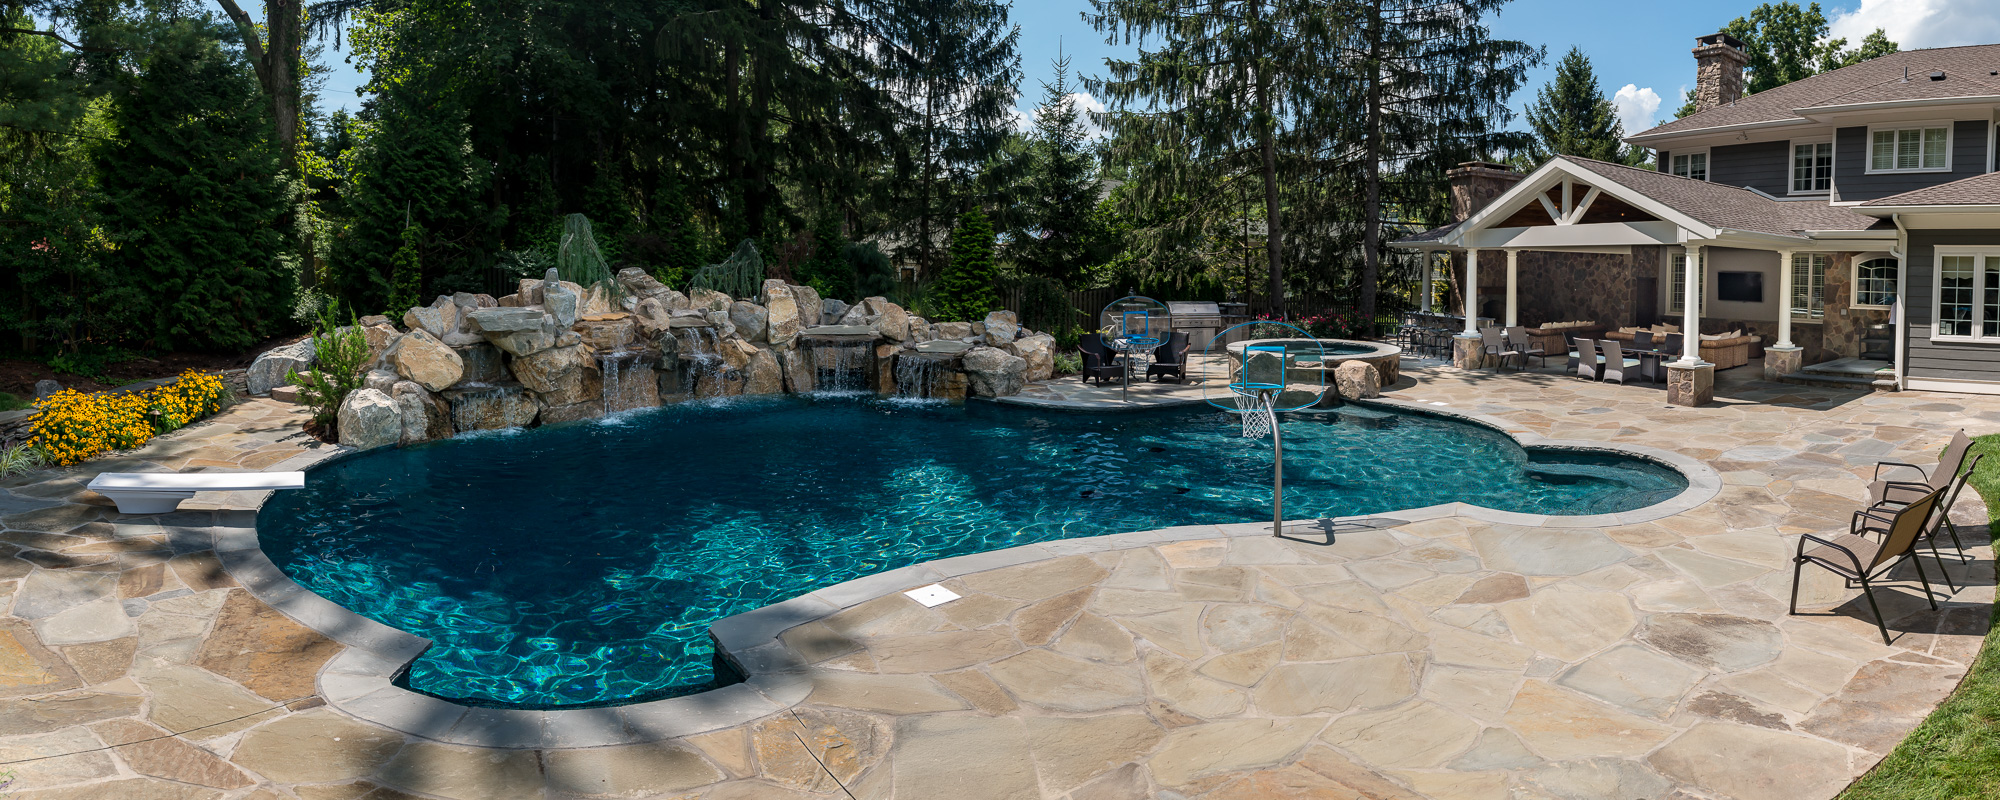 New providence nj custom inground swimming pool design for Pool design nj